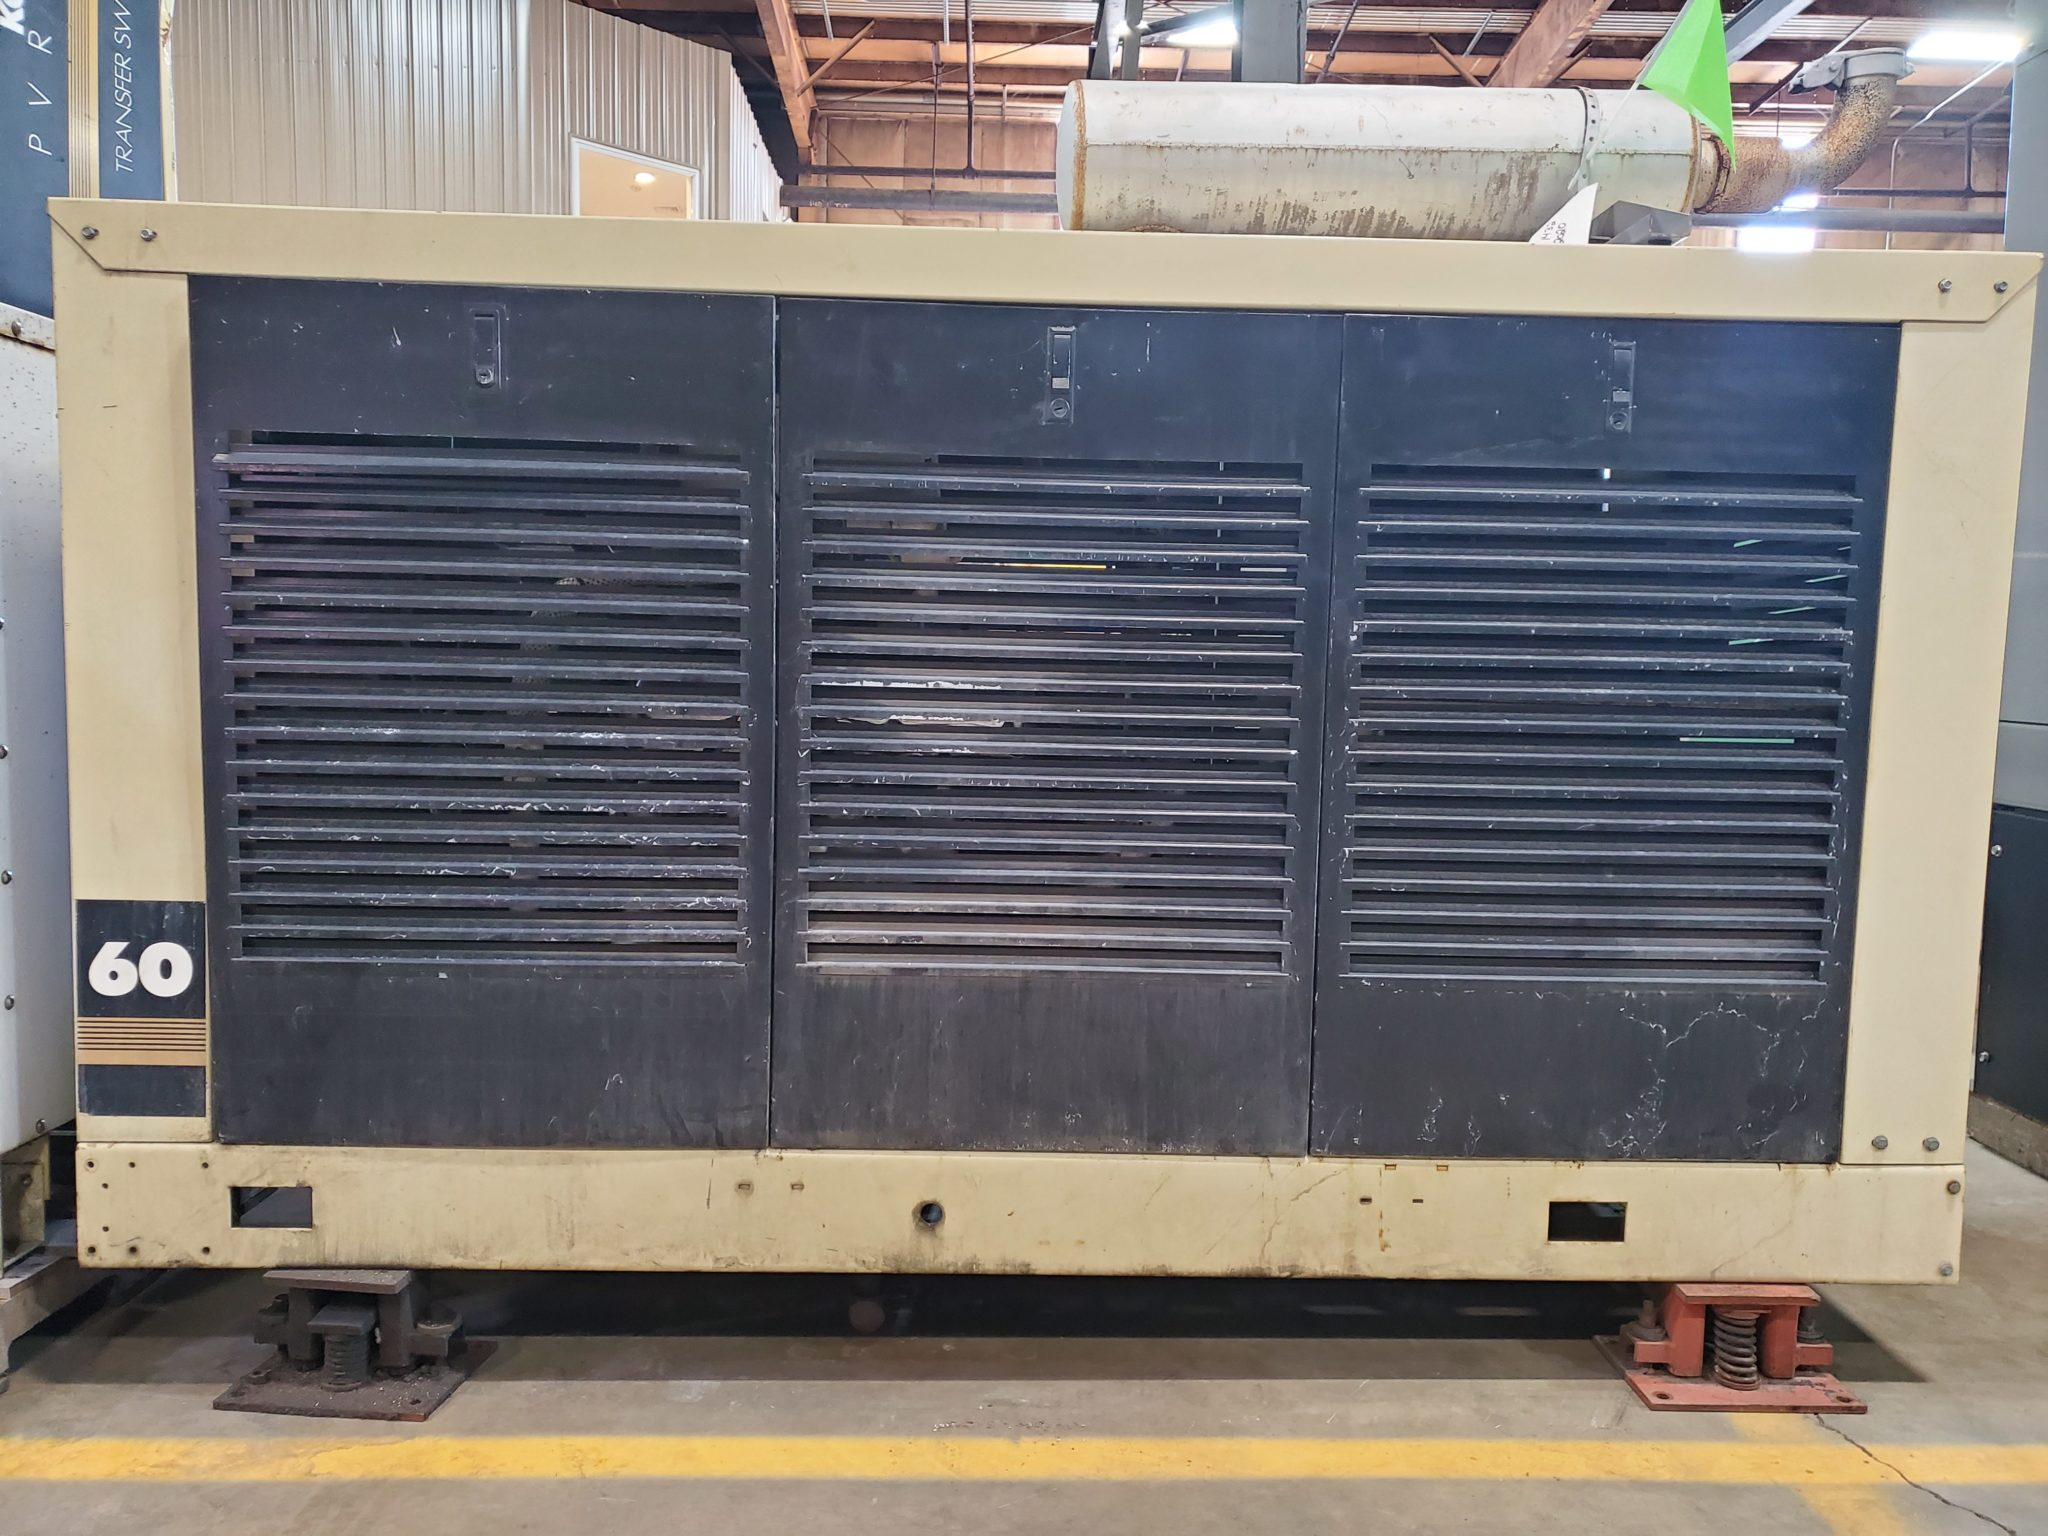 Used 60 kW Kohler 60RZ272 Natural Gas Generator